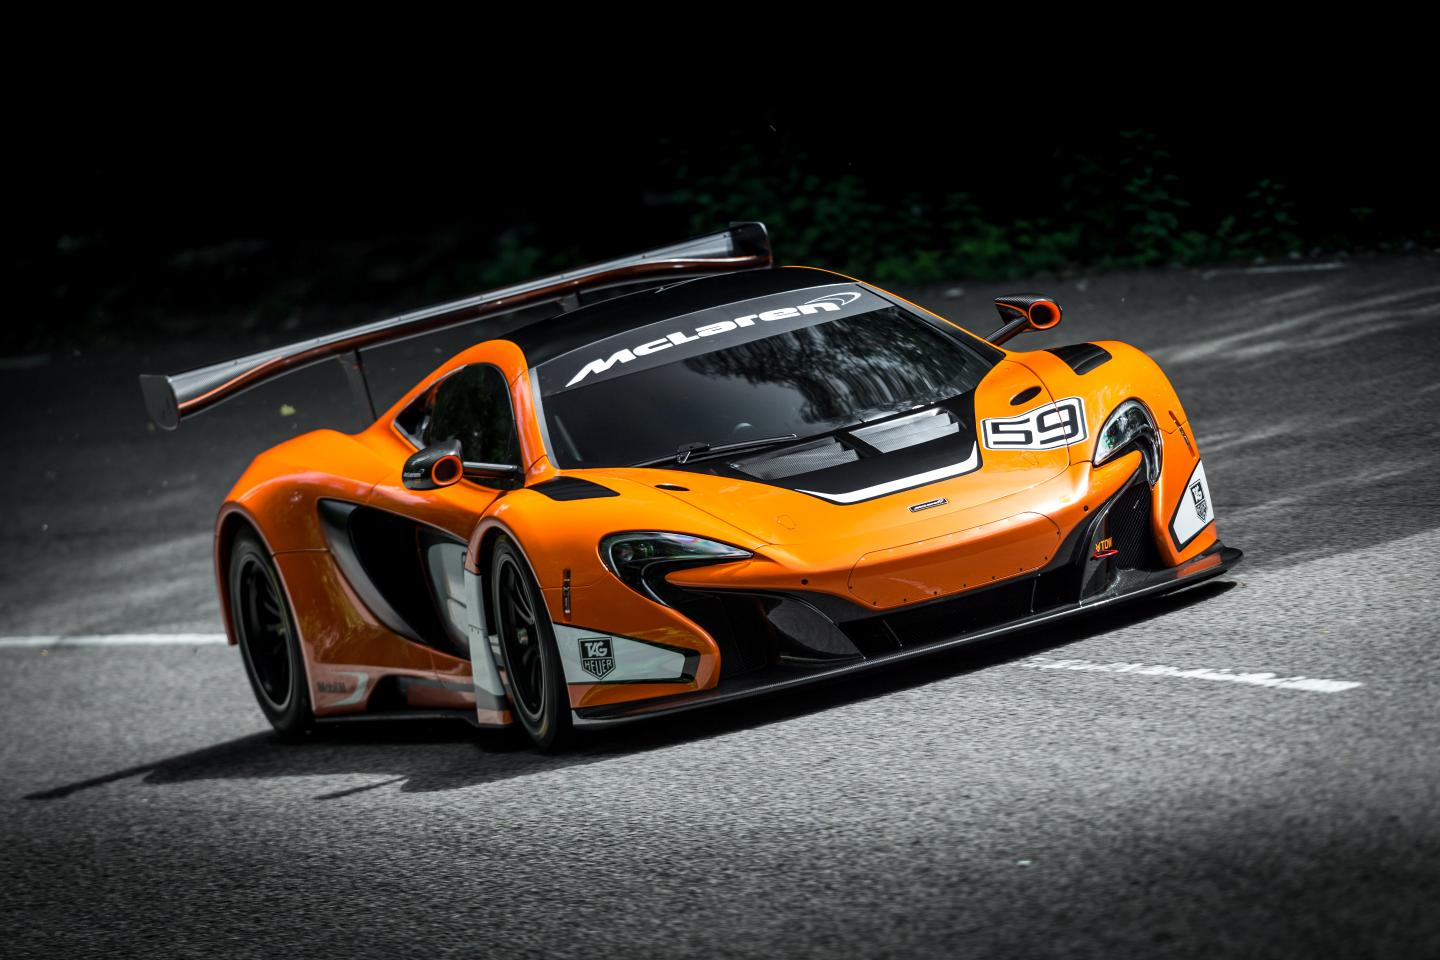 mclaren-650s-gt3-goodwood-2